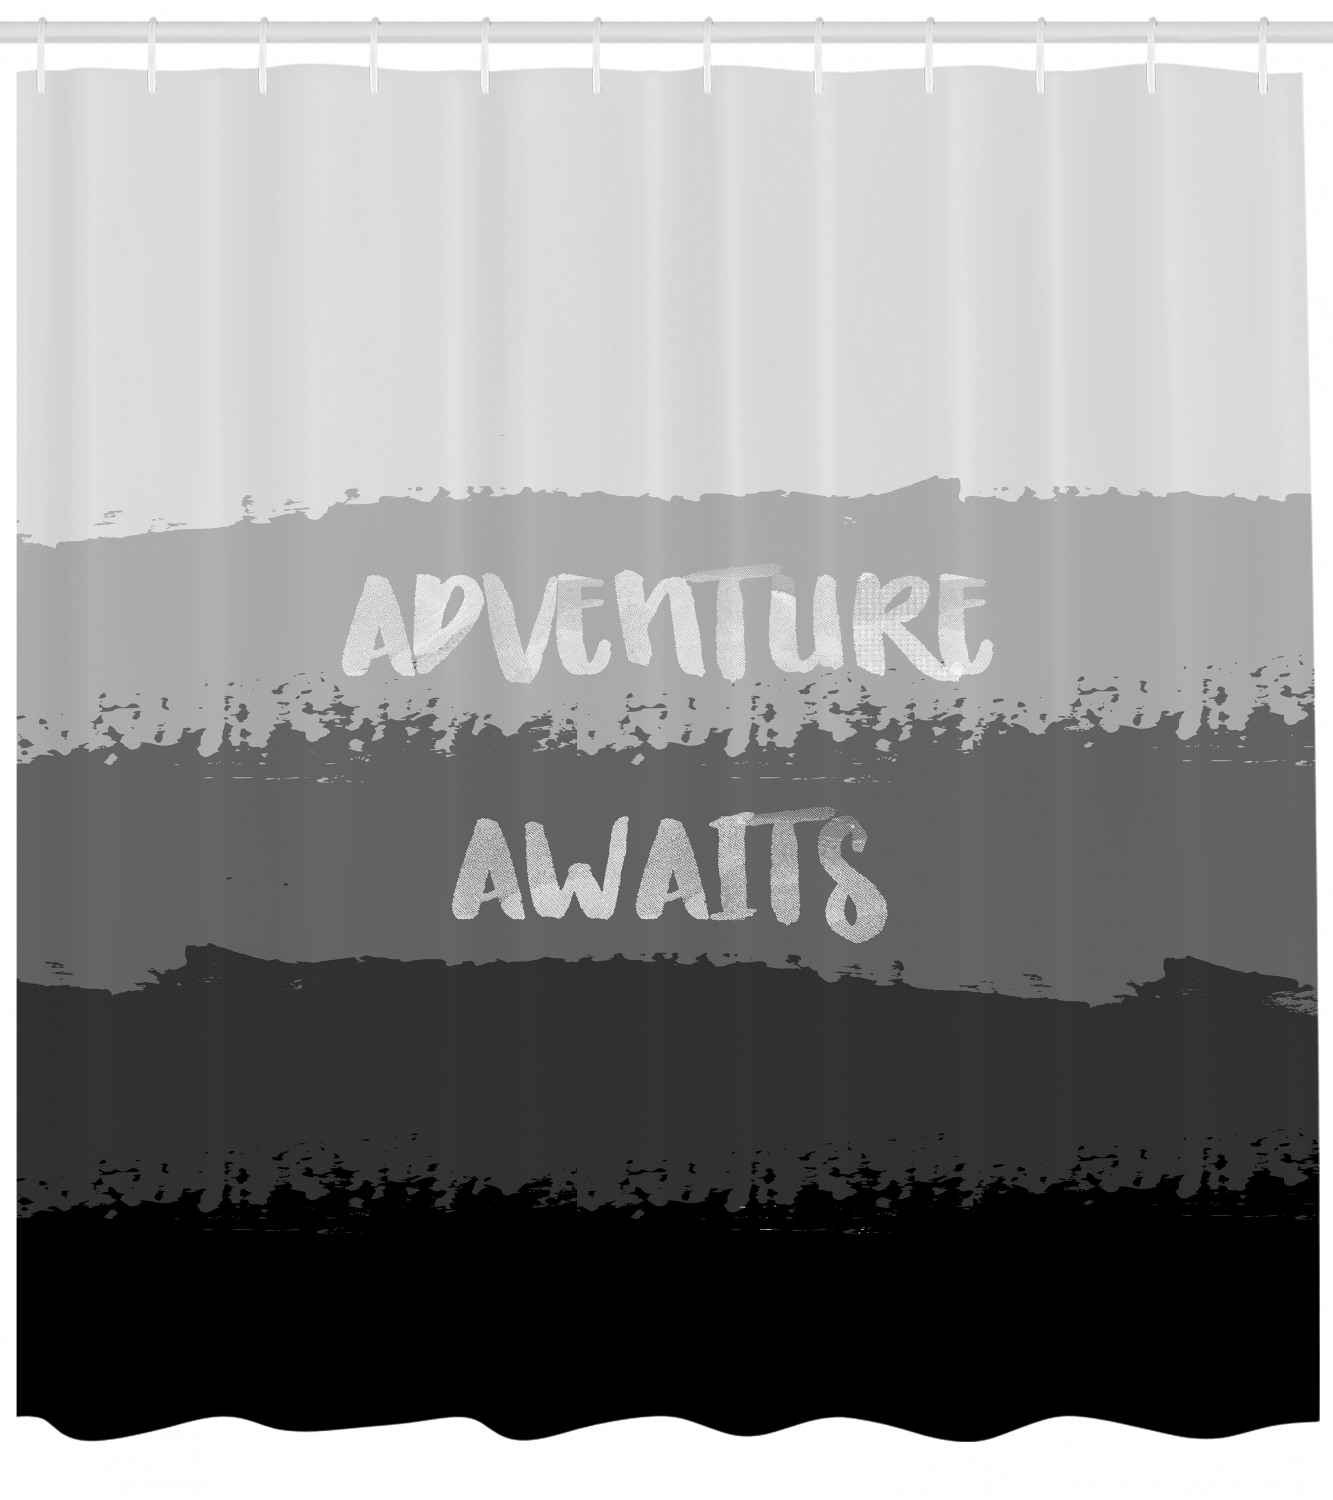 Adventure Awaits Shower Curtain Shades Of Grey Pattern Brush Stroke Horizontal Stripes With Quote Fabric Bathroom Set With Hooks 69w X 70l Inches